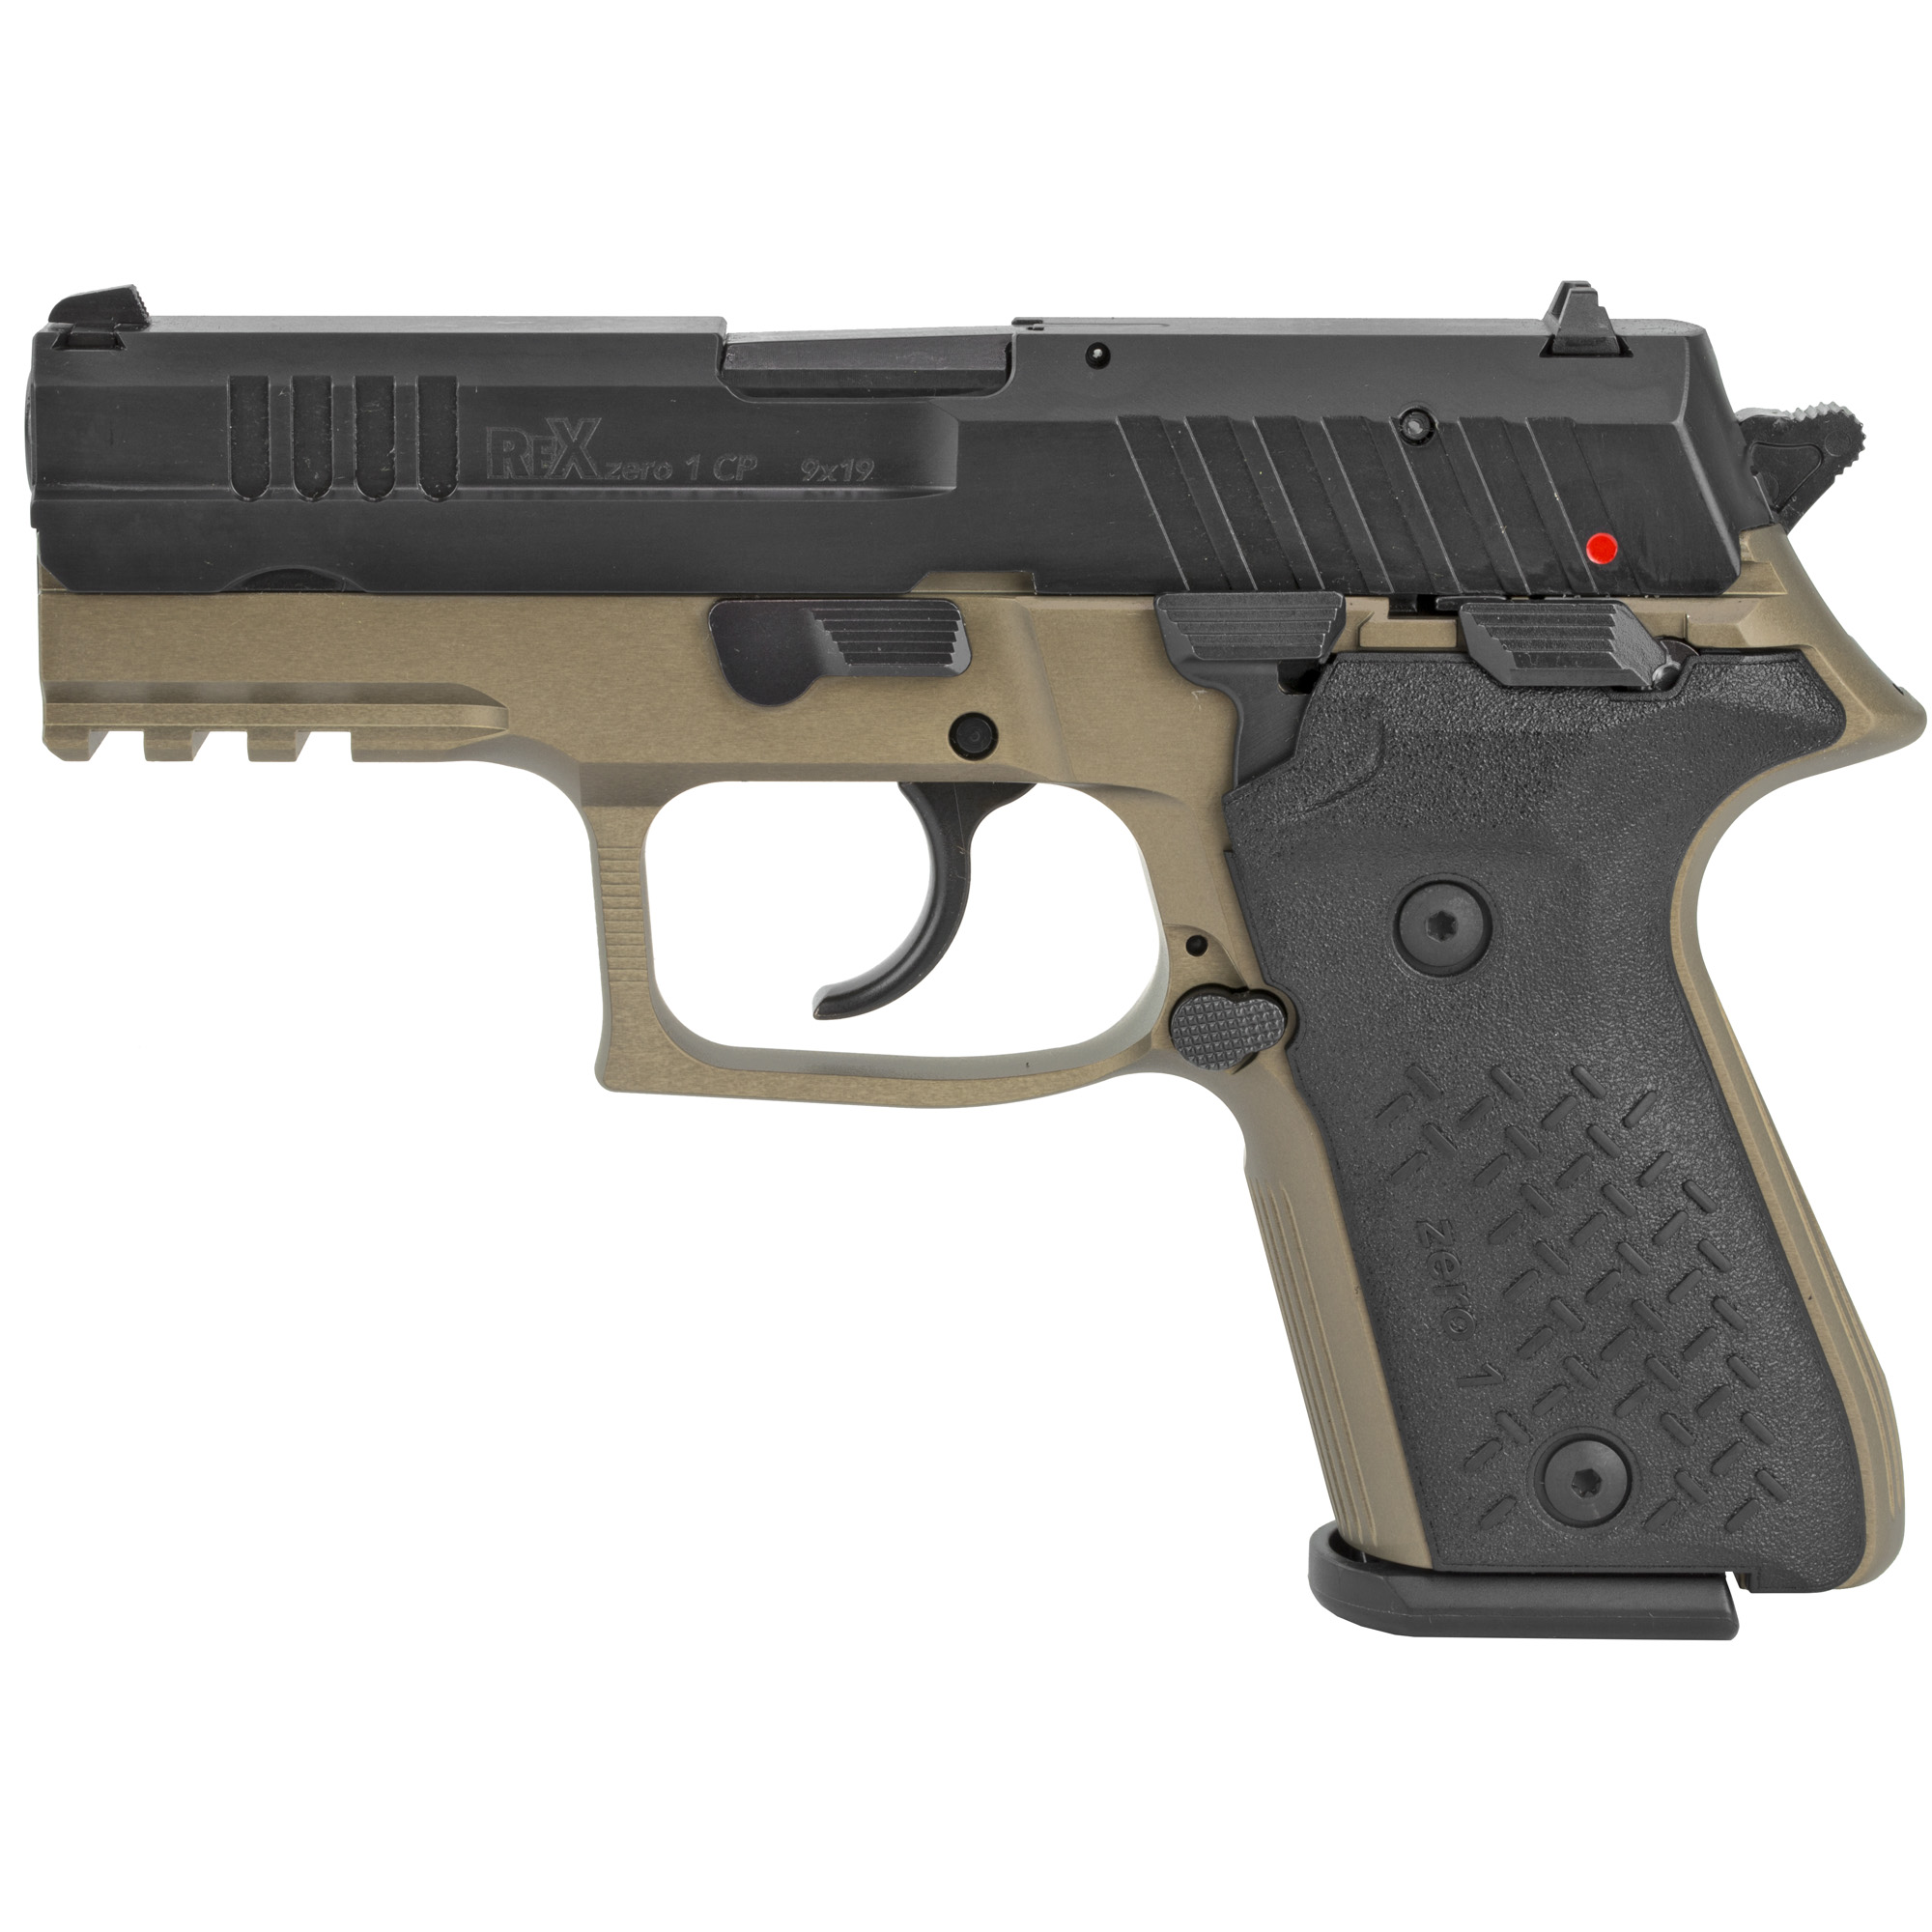 """The most sought after pistol in the world"""" the Rex Zero 1 9mm pistol by Arex is available in the US exclusively through FIME Group"""" LLC. The Rex Zero 1 pistol complies with strict military standards for reliability and has passed extreme temperature"""" hostile environment"""" and drop tests. The expected service life for the pistol exceeds 30""""000 rounds."""